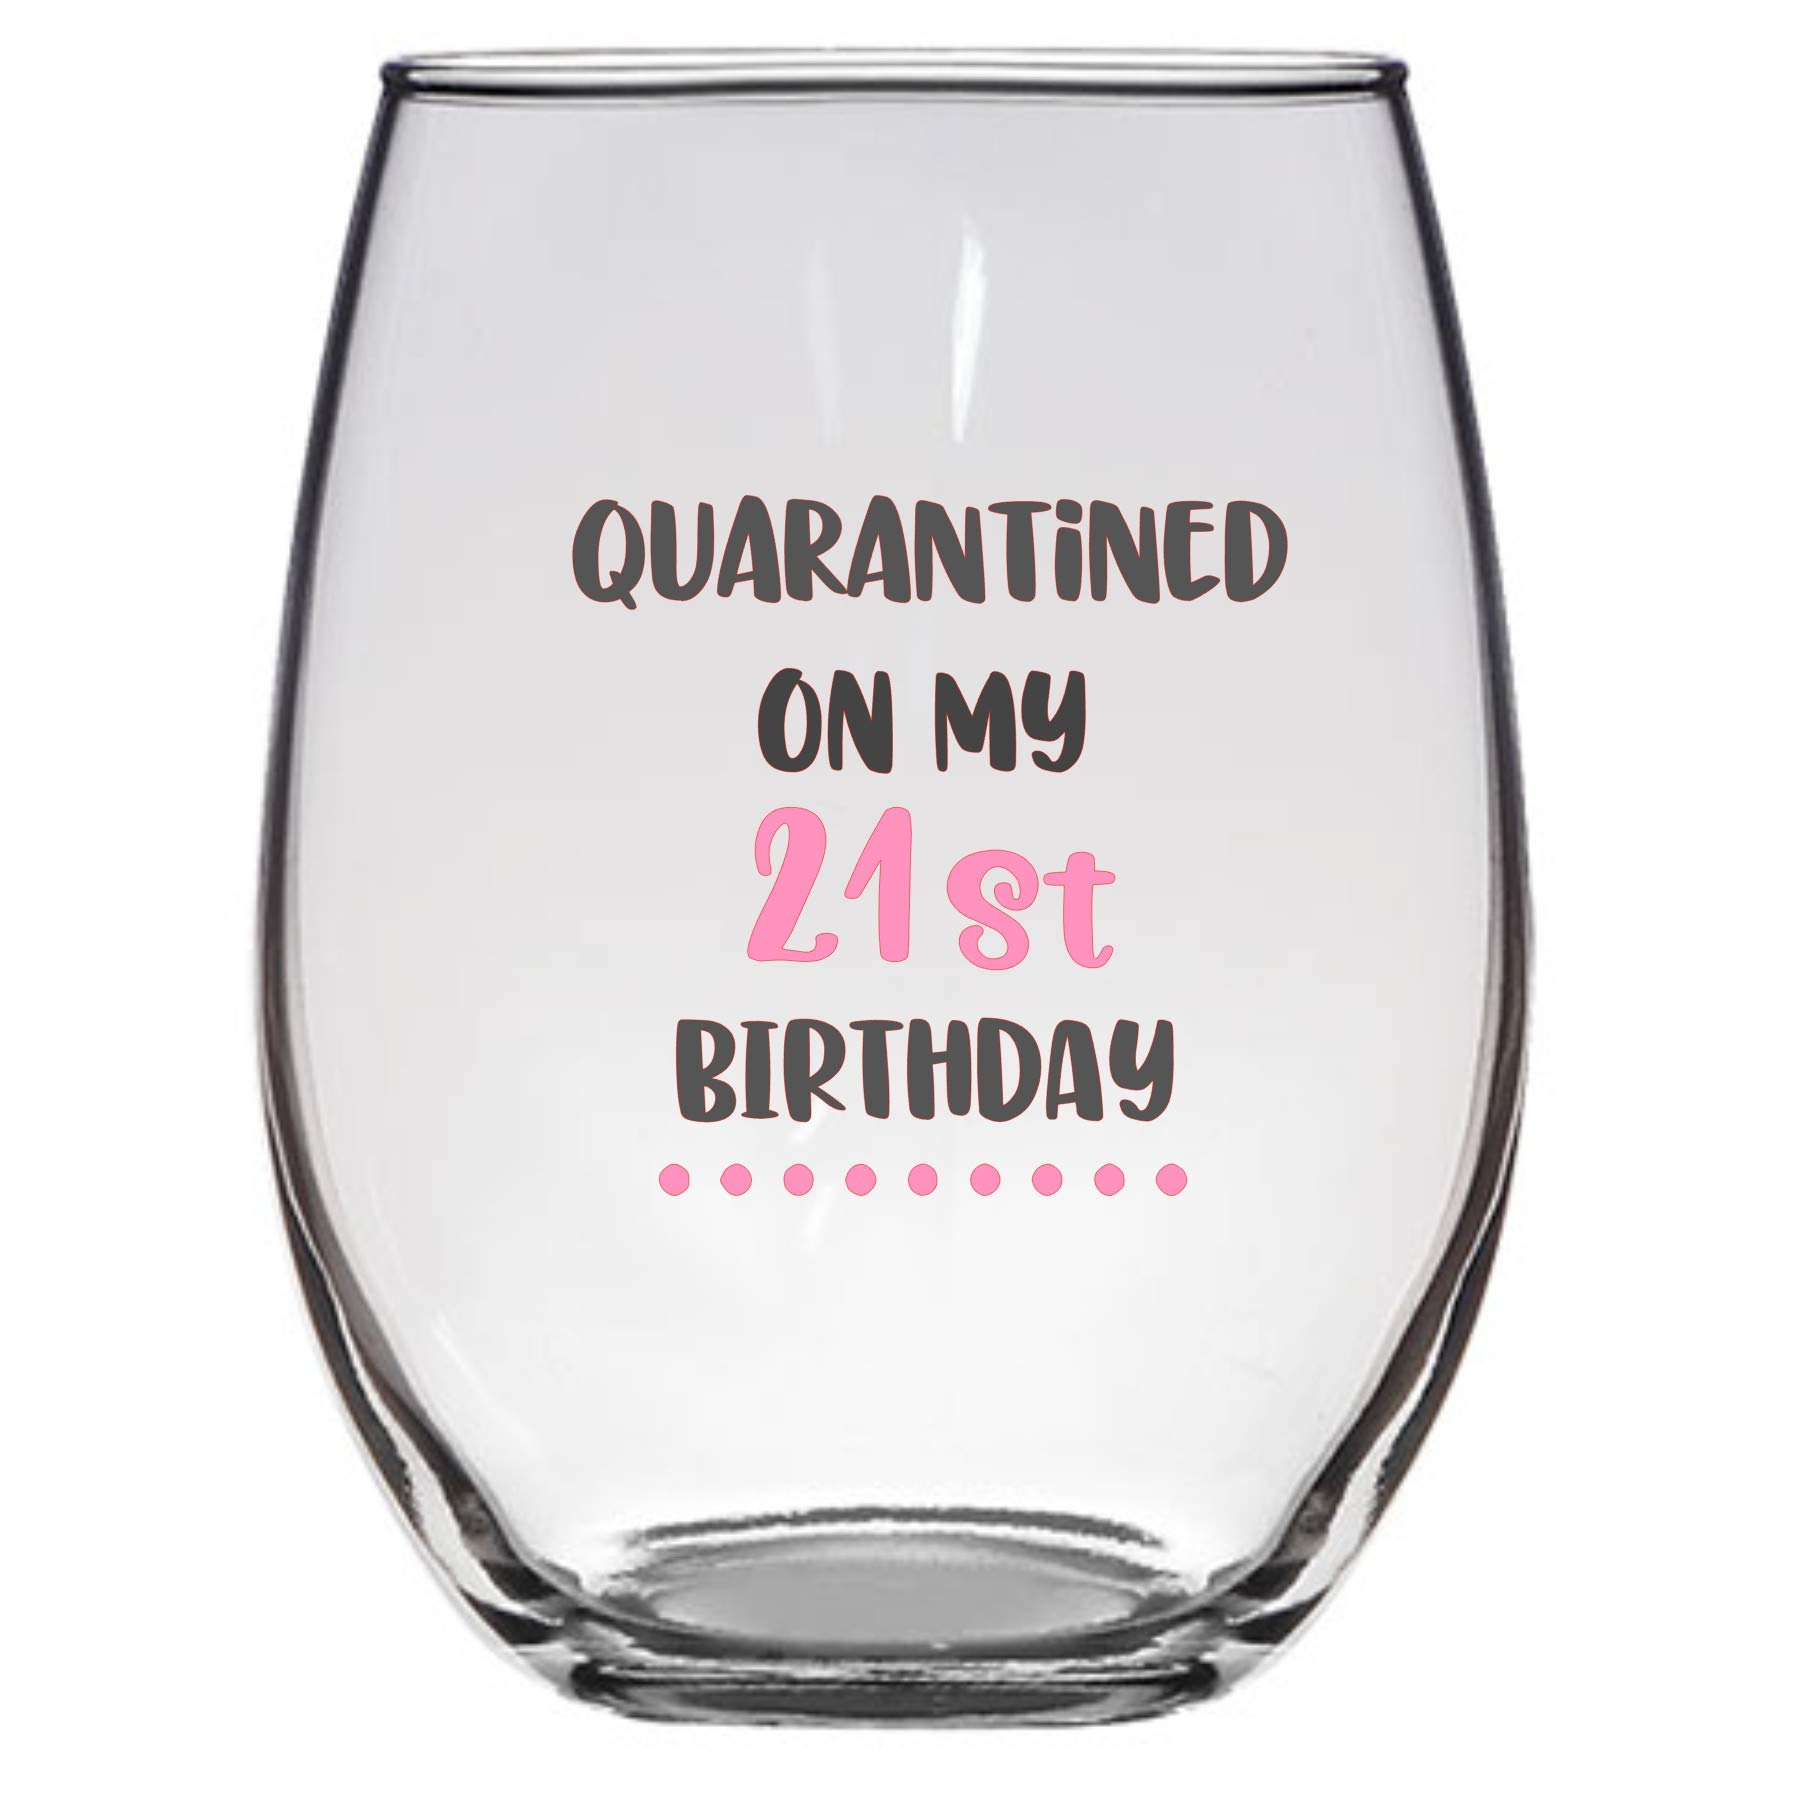 Quarantined on My 21st Birthday Wine Glass, 21 Oz, 21st birthday wine glass, social distancing, funny birthday Wine glass